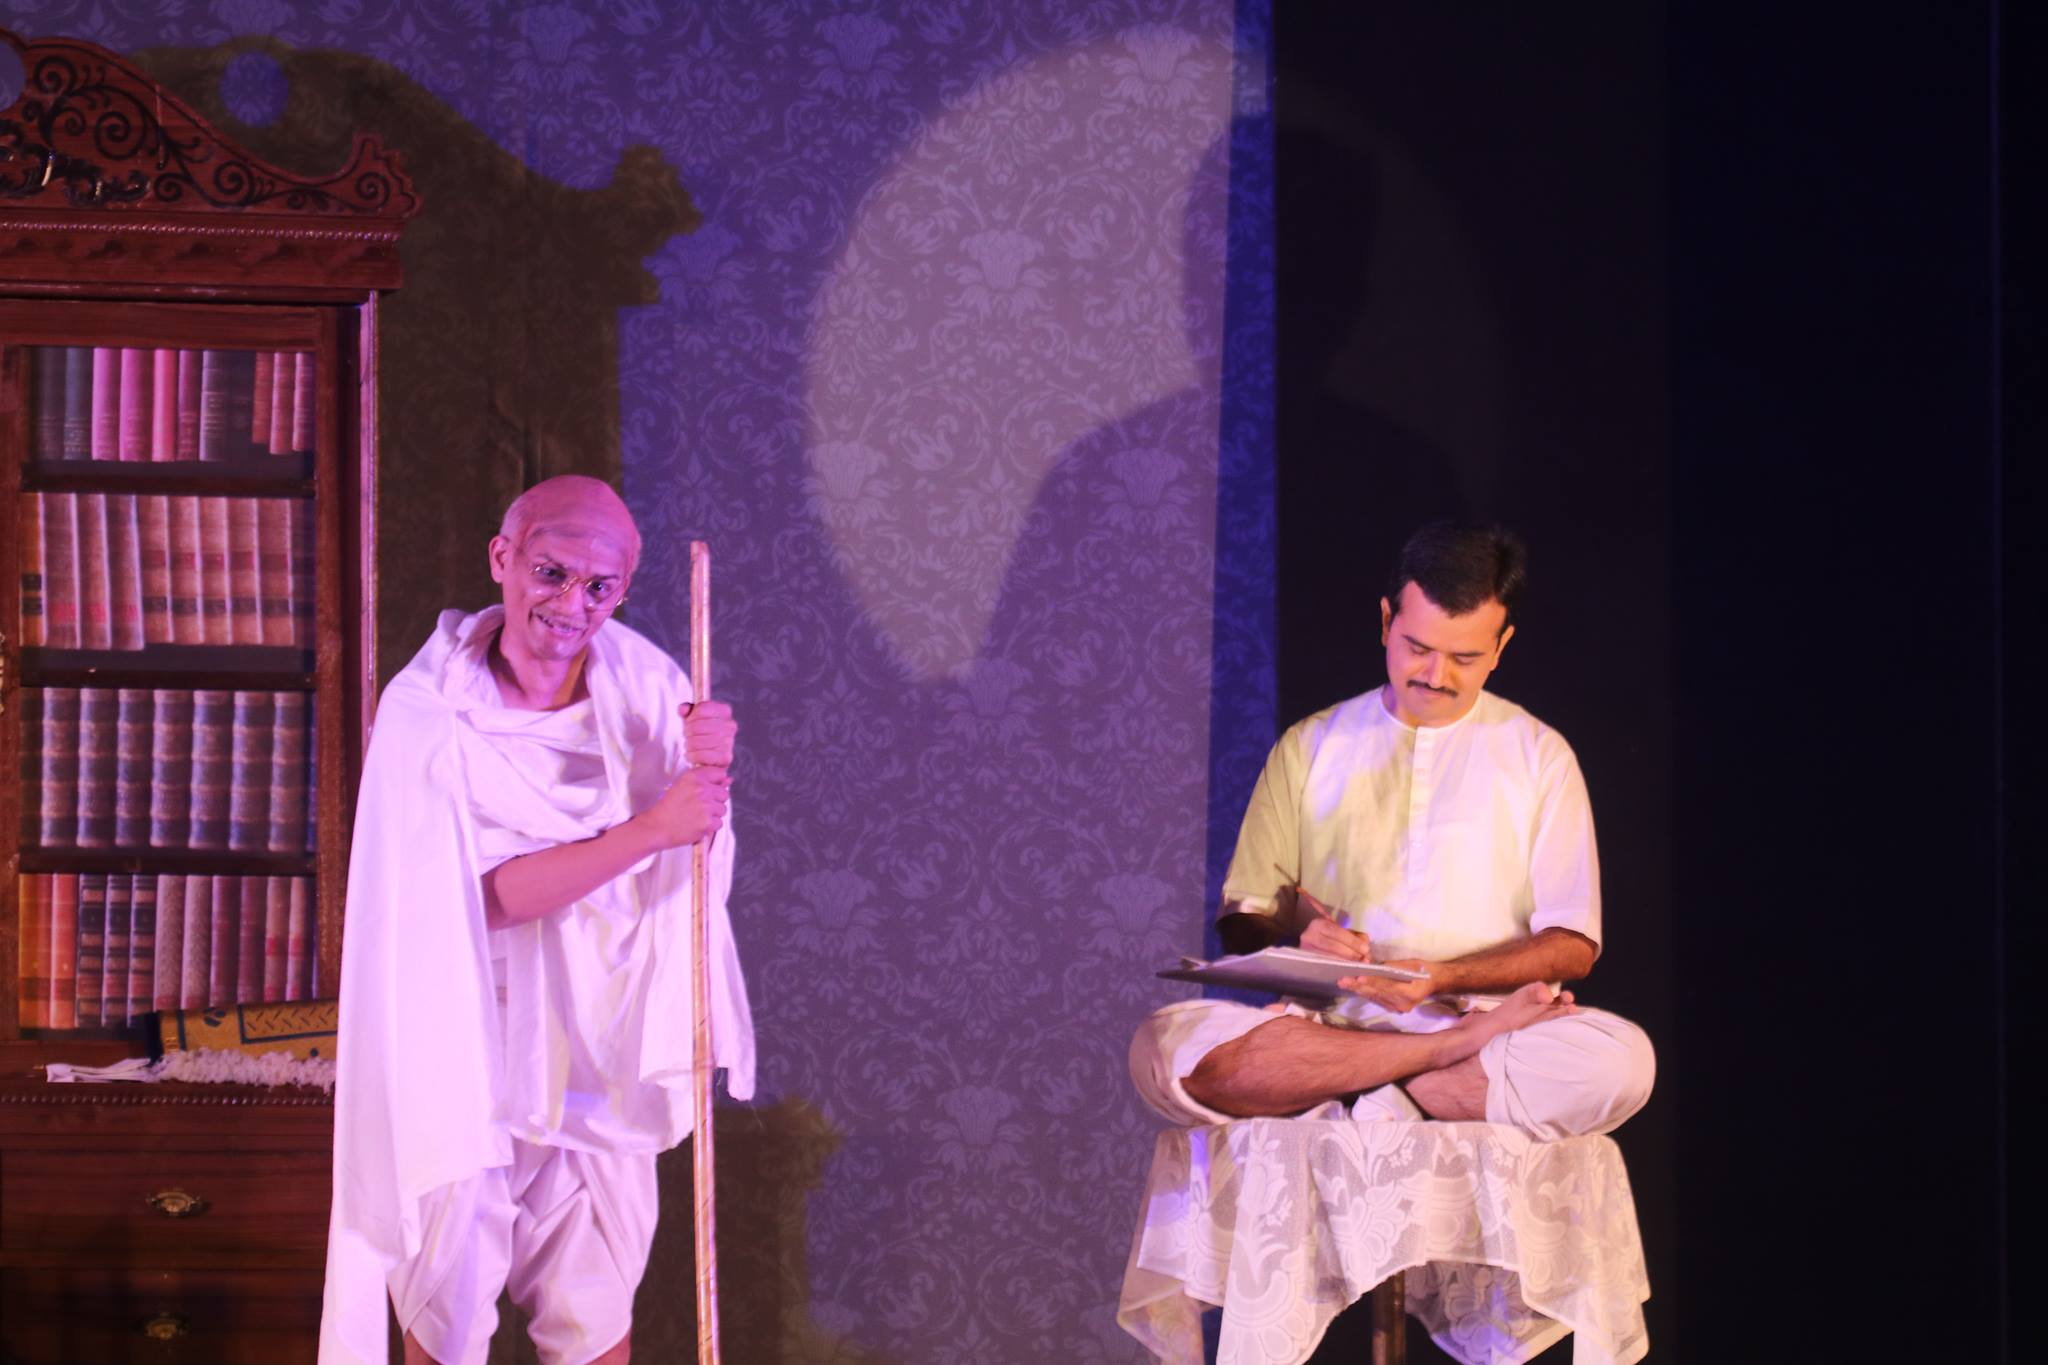 still-from-the-play-yugpurush-portraying-an-inspiring-exchange-between-the-mahatma-and-his-mentor-shrimadji